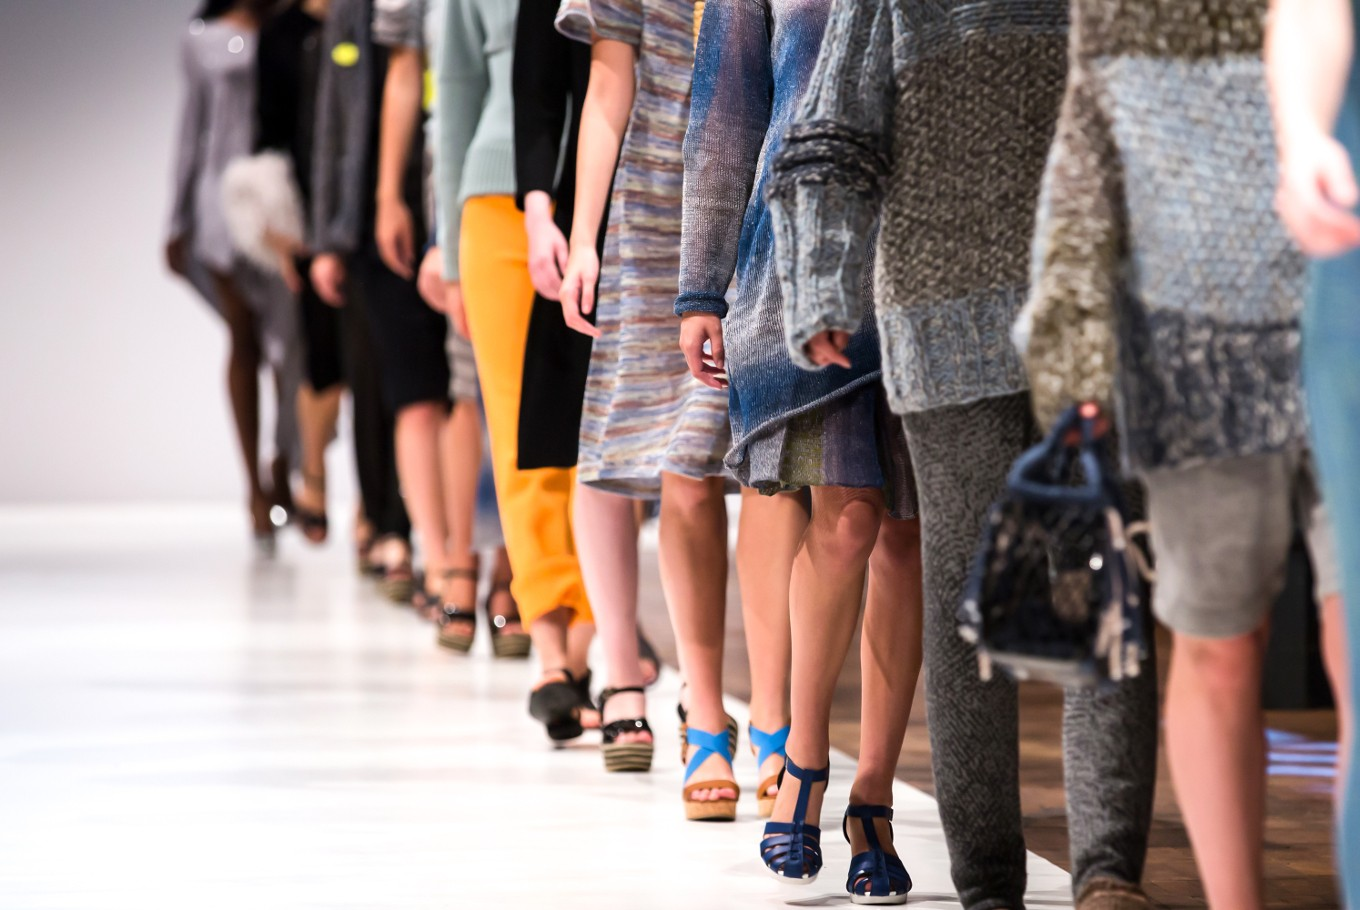 2Madison Avenue to appear at New York Fashion Week 2019